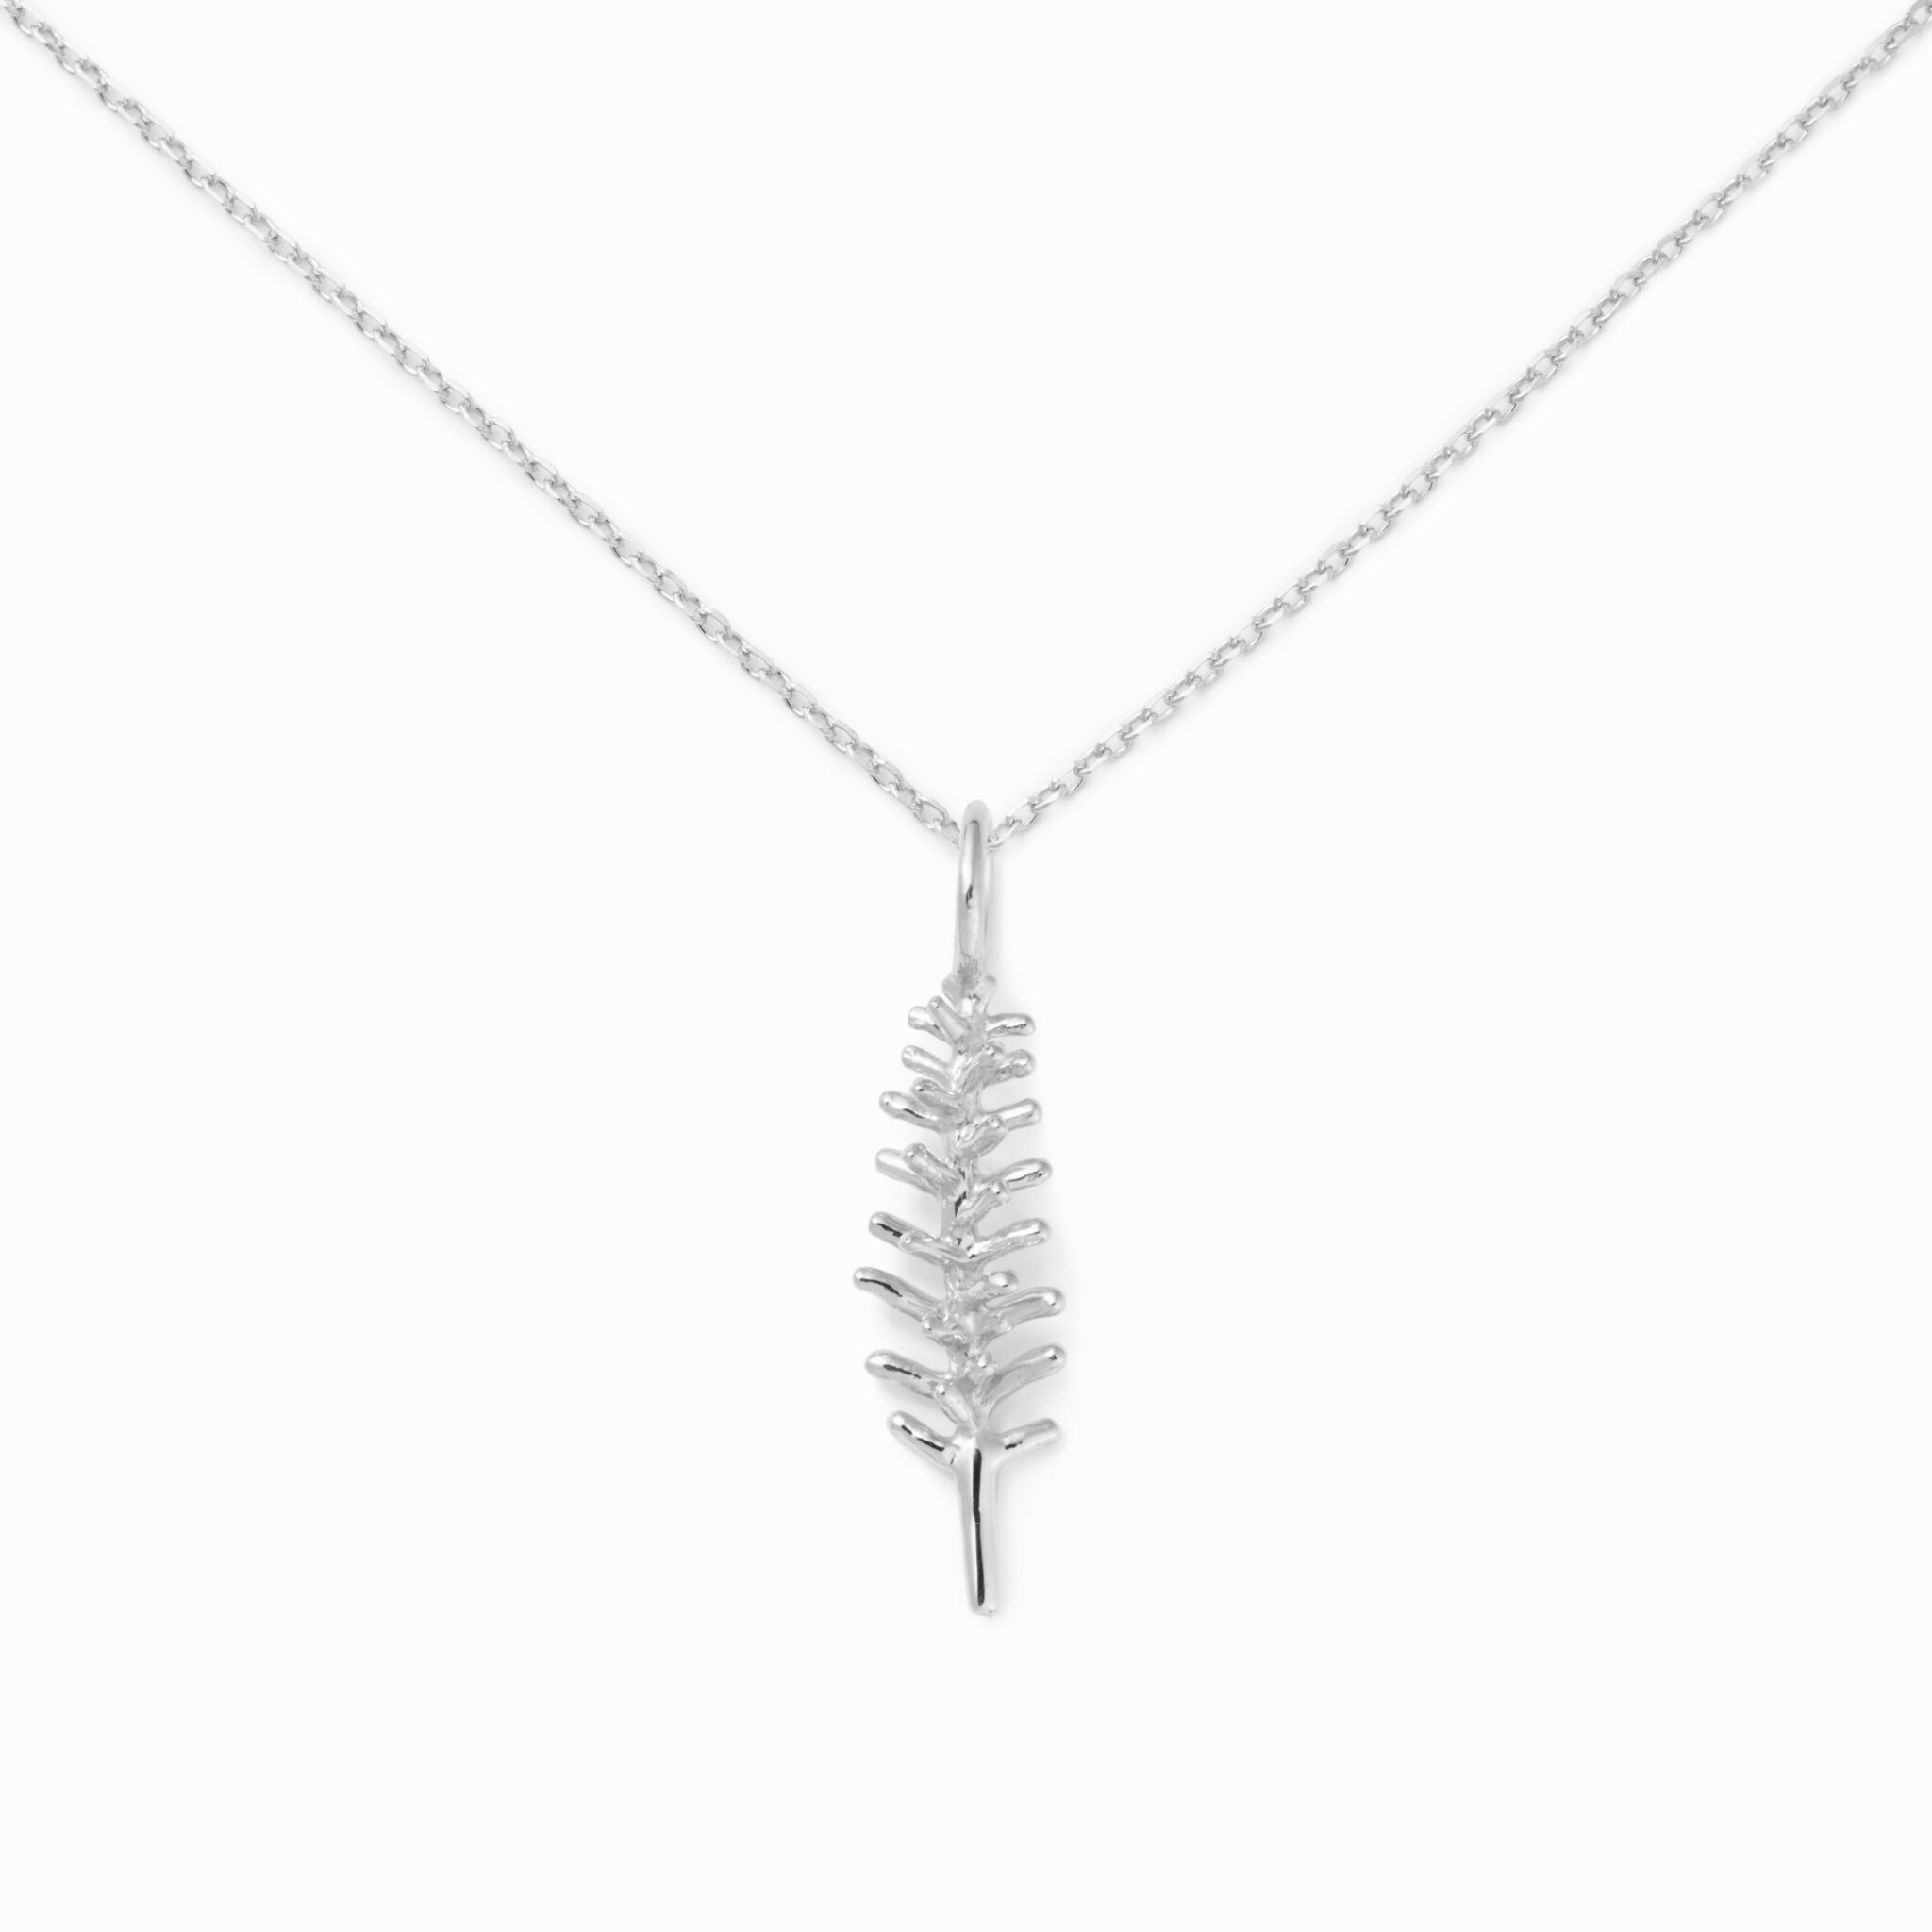 Rosemary Necklace, Sterling Silver